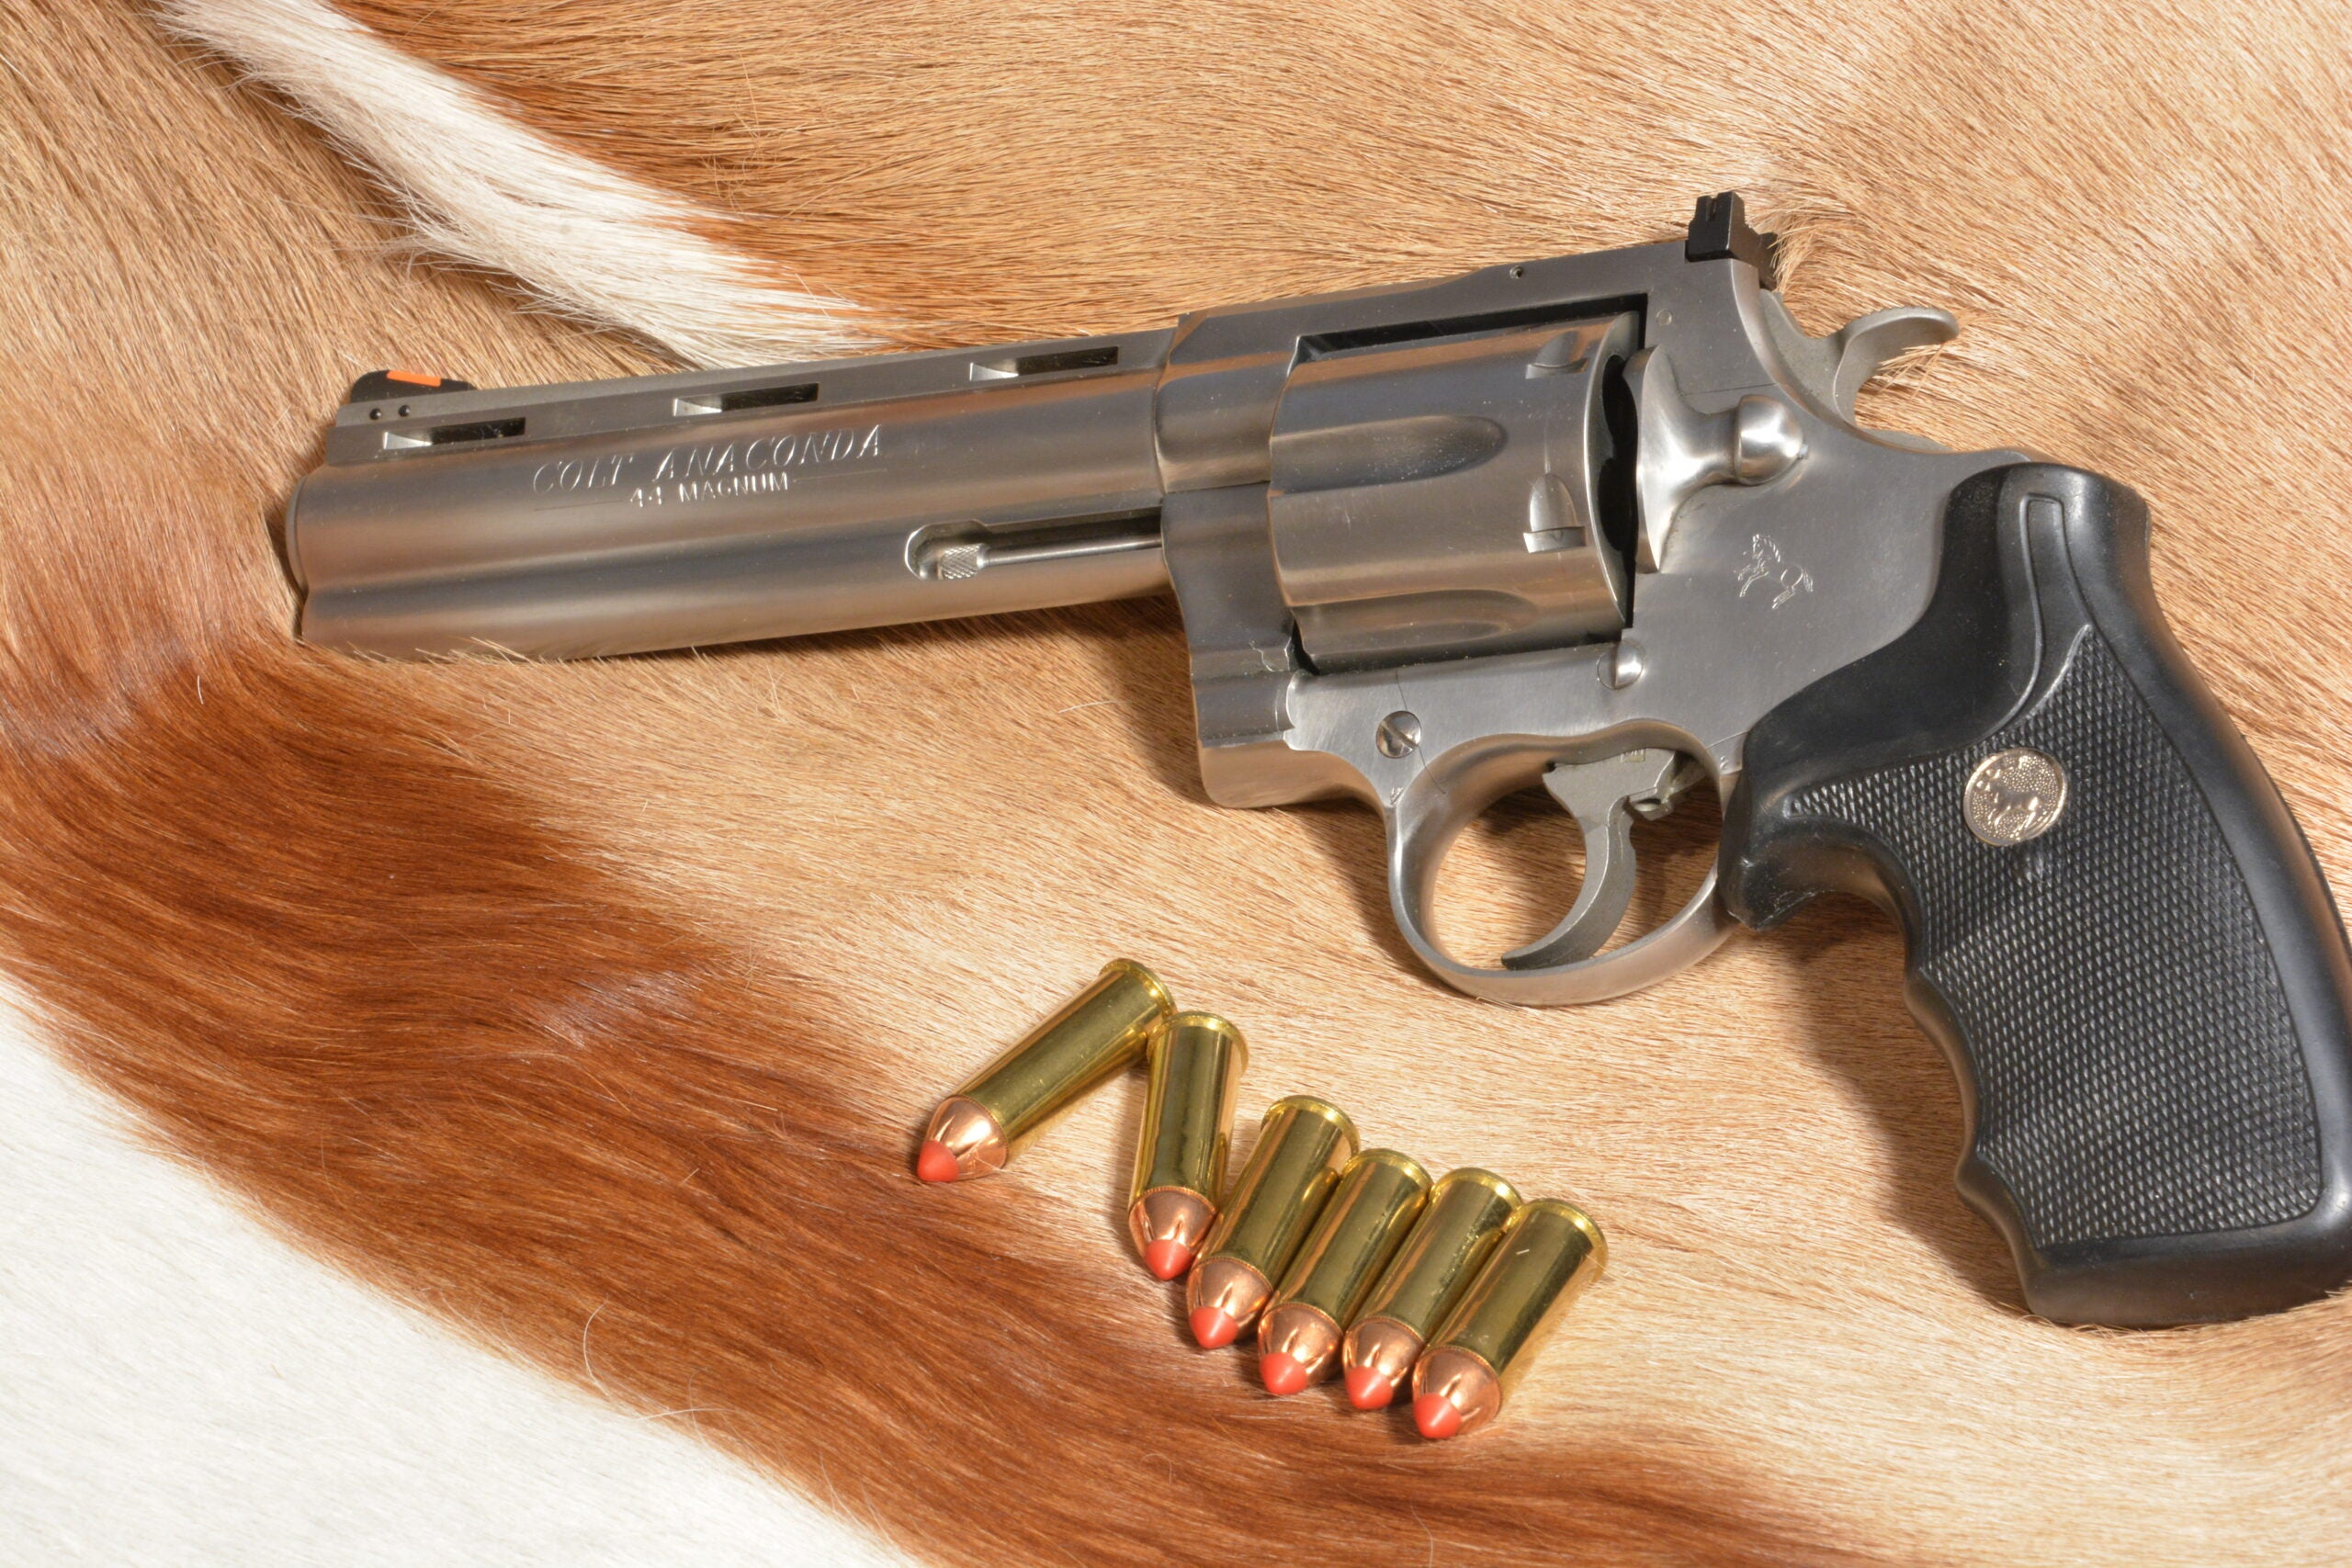 Colt Anaconda in .44 Magnum is our pick for best revolver.